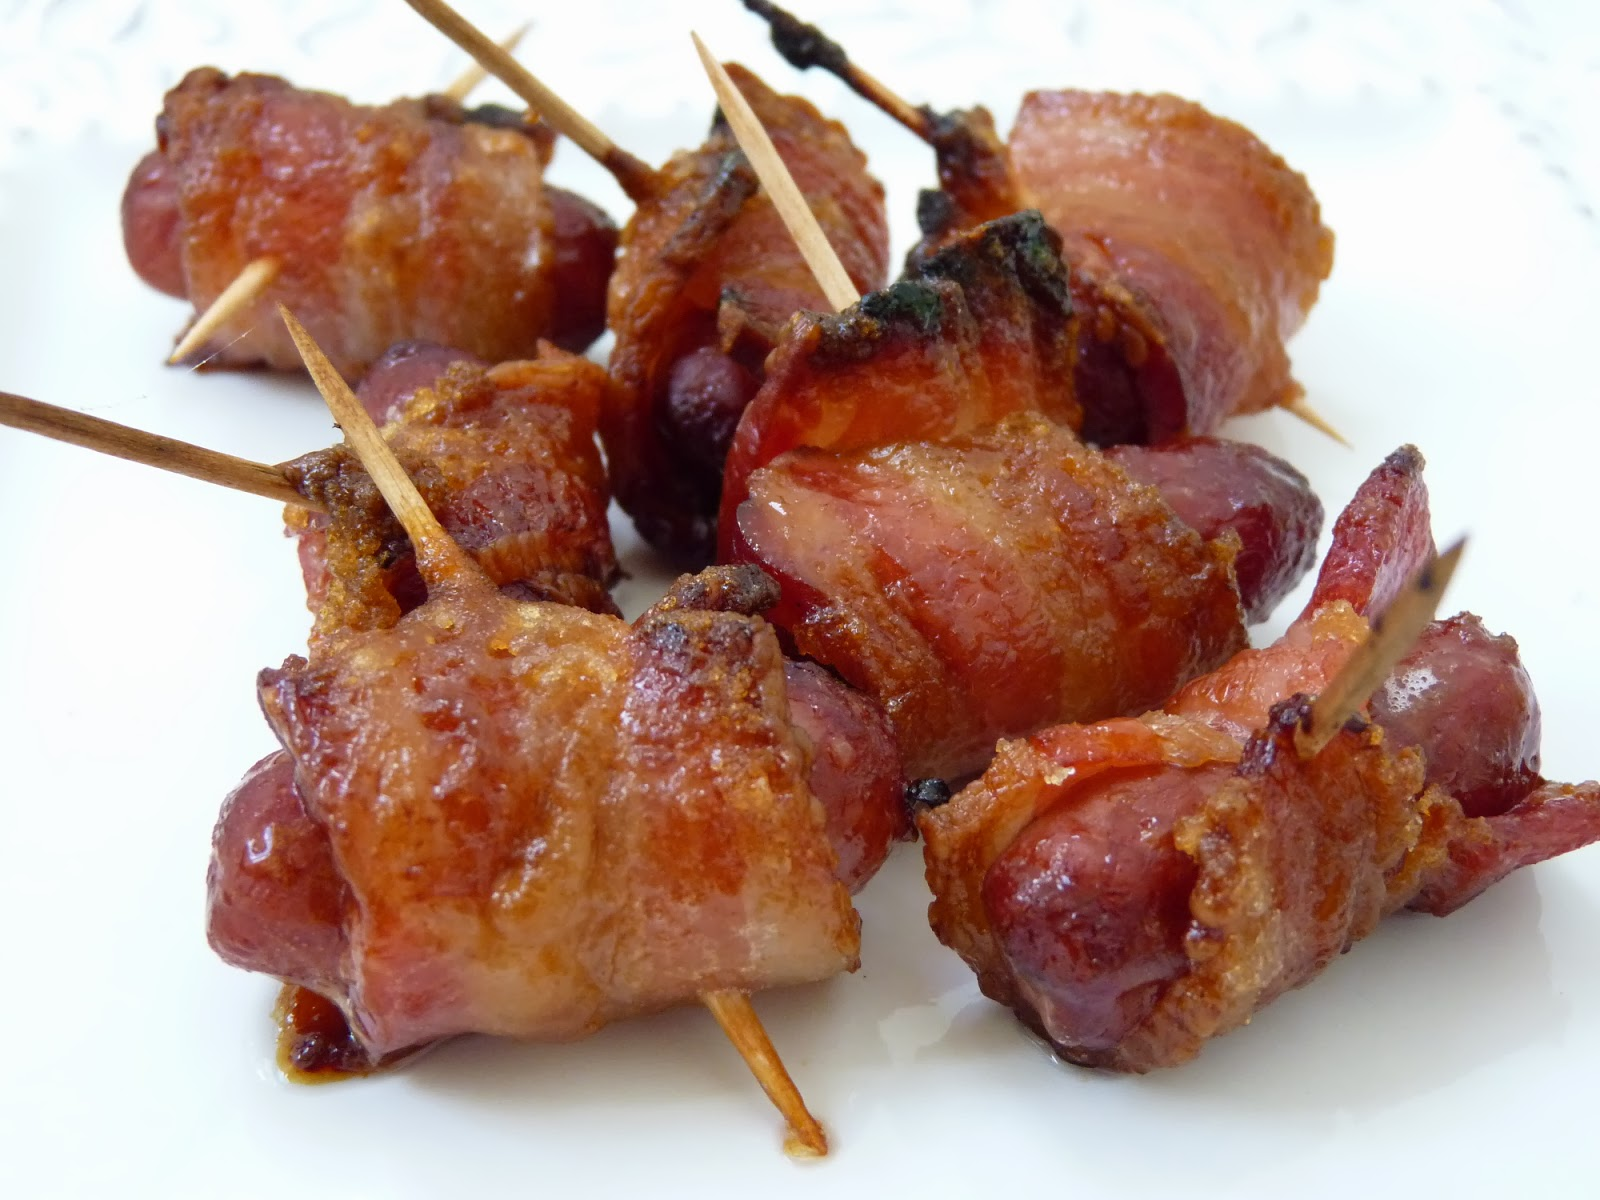 bacon wrapped corn bacon wrapped potatoes bacon wrapped new potatoes ...